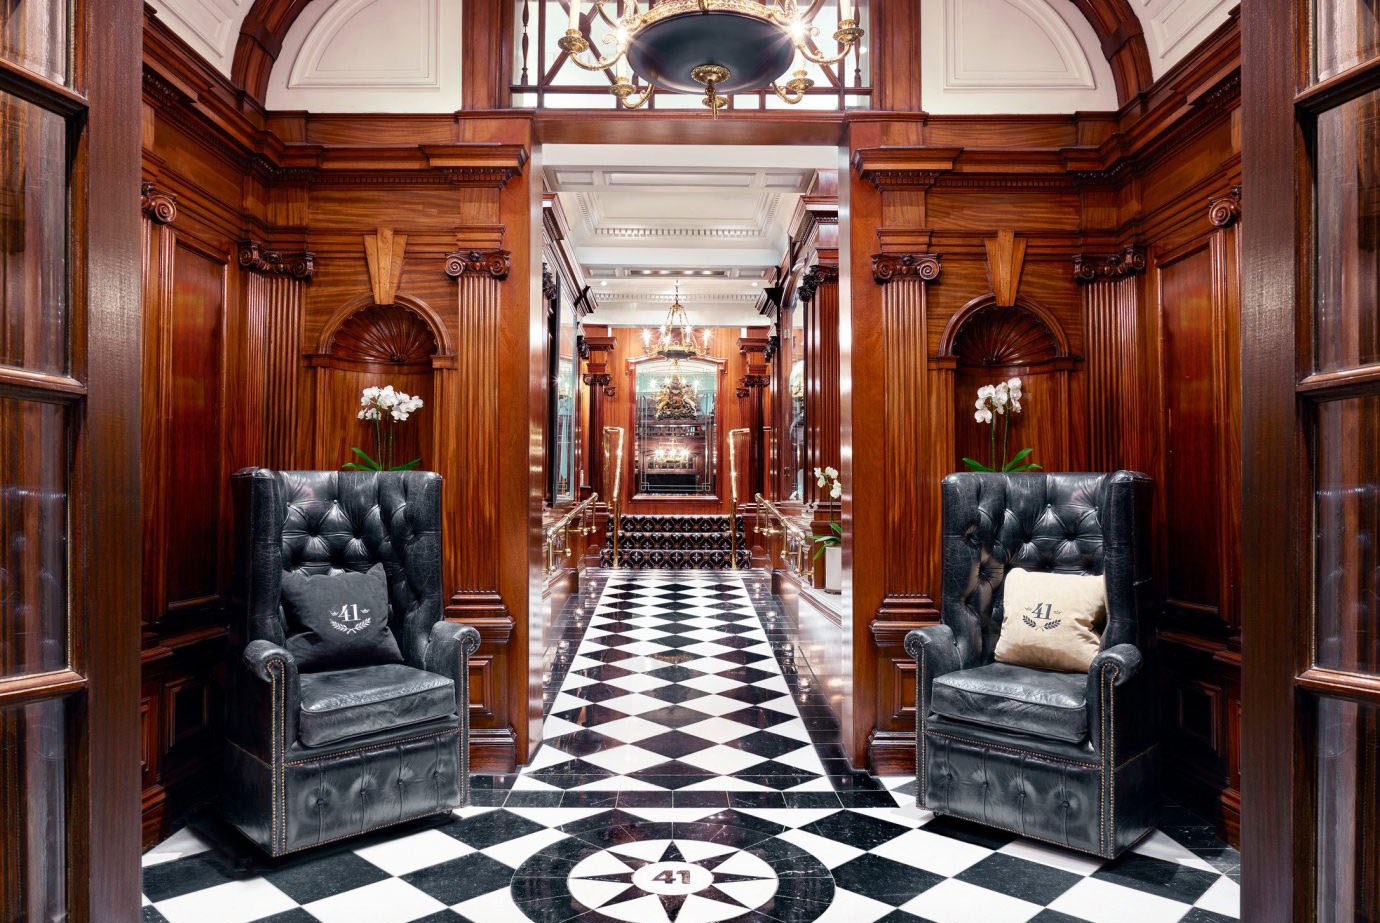 15 London Hotels We Absolutely Adore